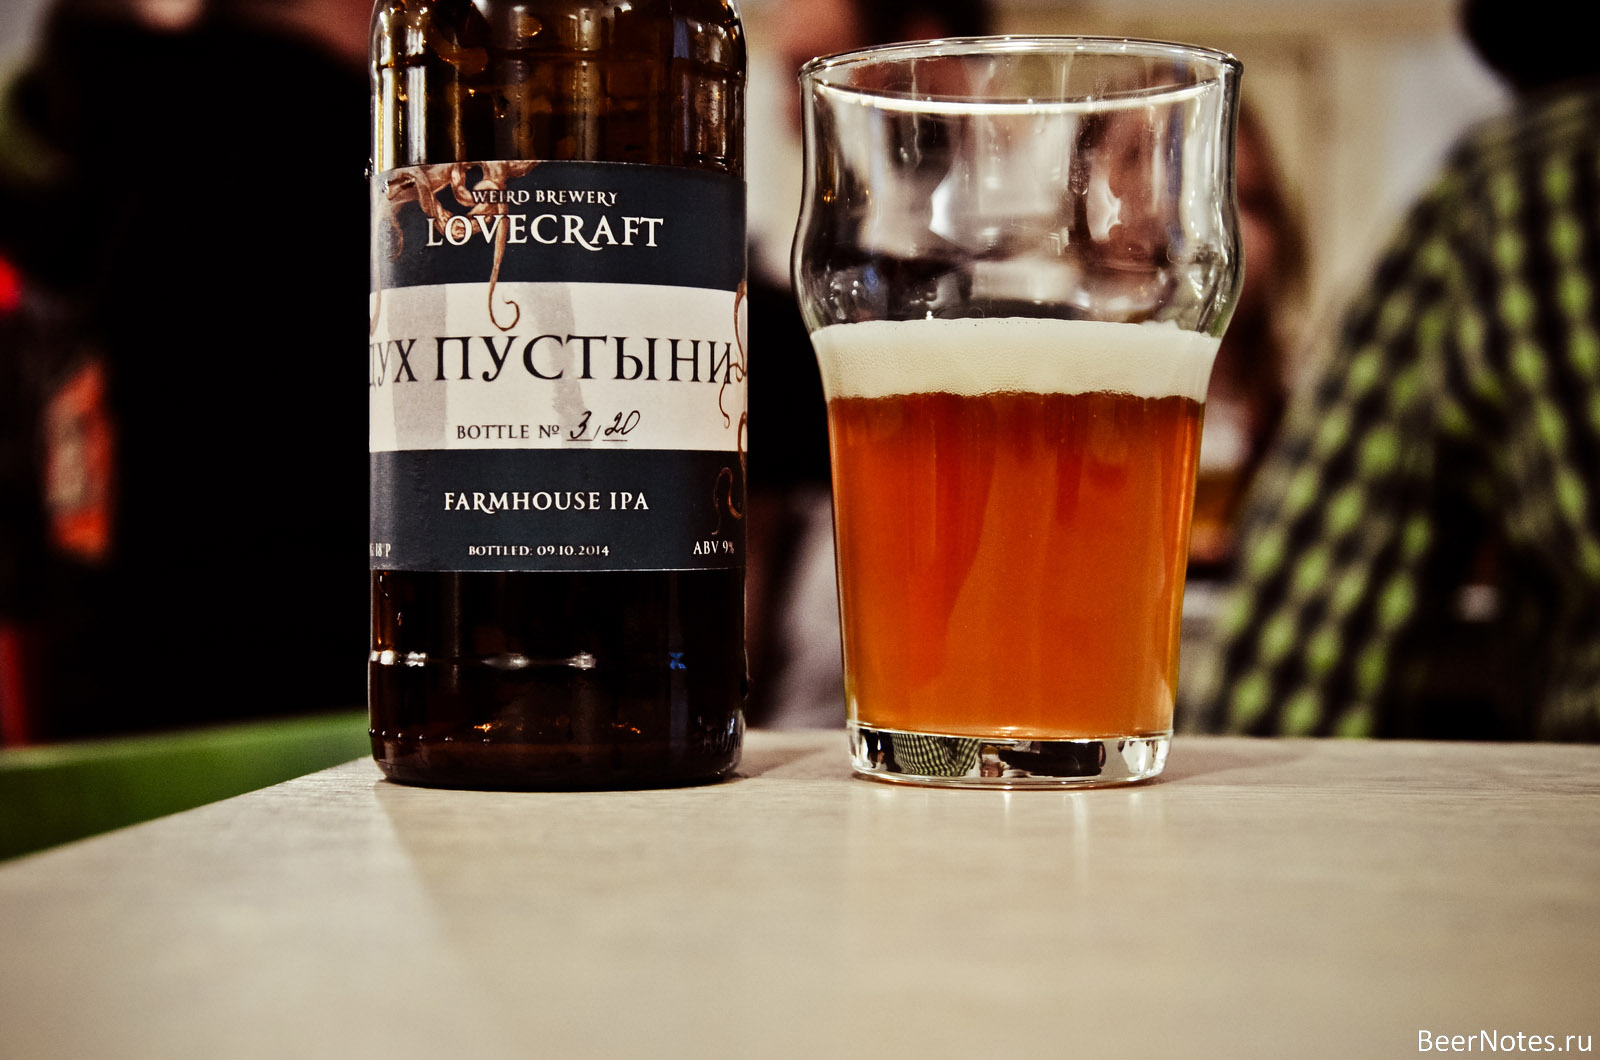 Lovecraft Weird Brewery Дух Пустыни2